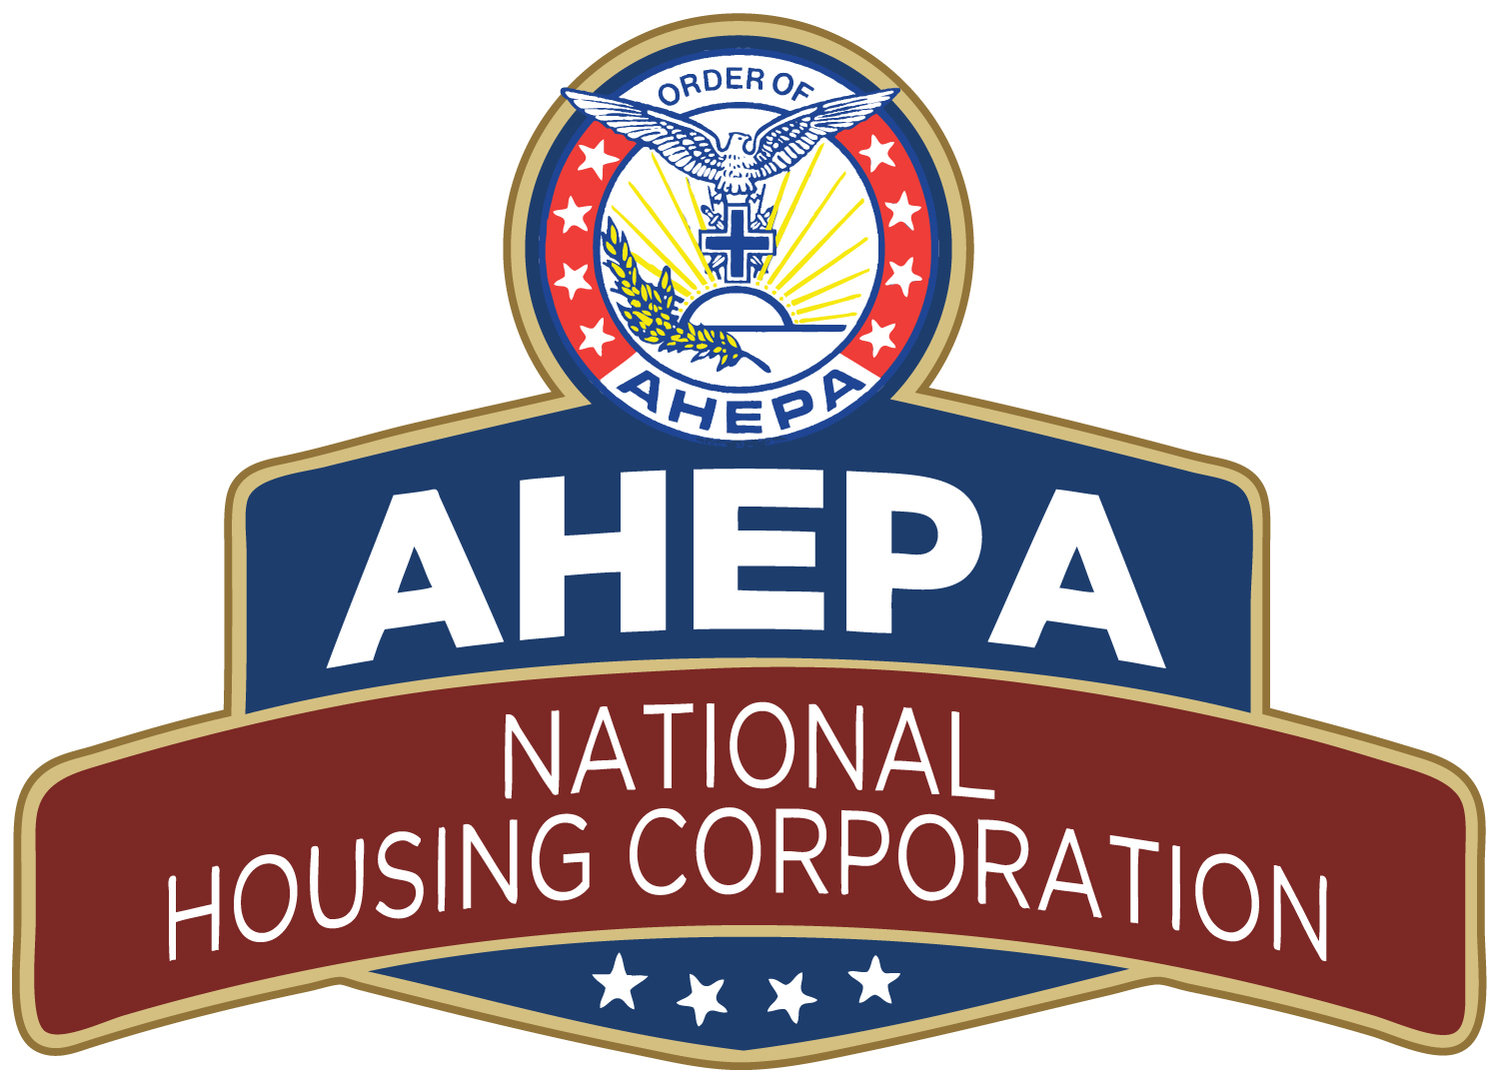 AHEPA National Housing Corporation